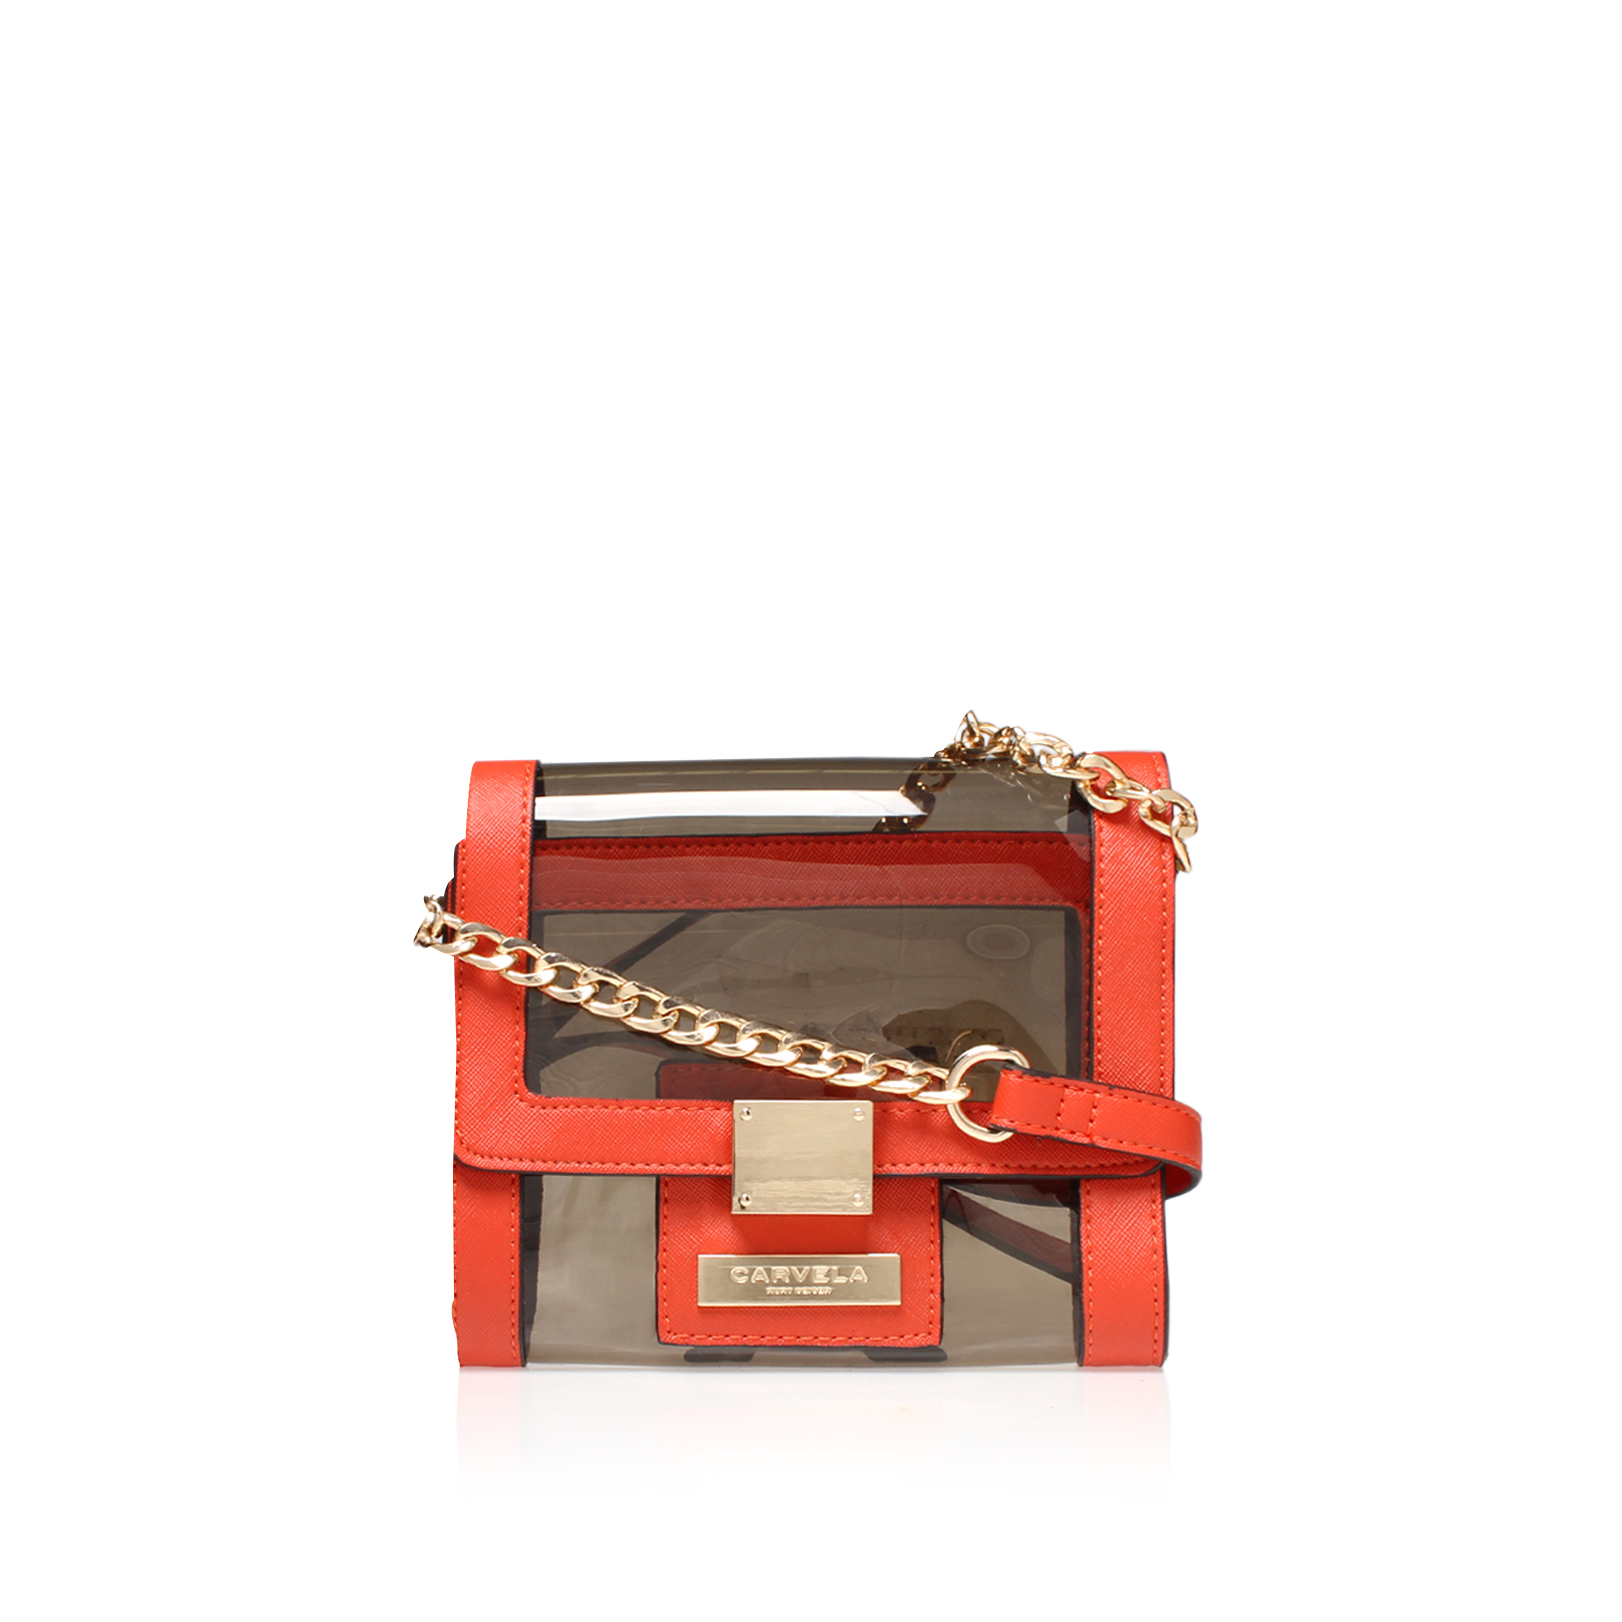 LIZ X BODY PERSPEX BAG